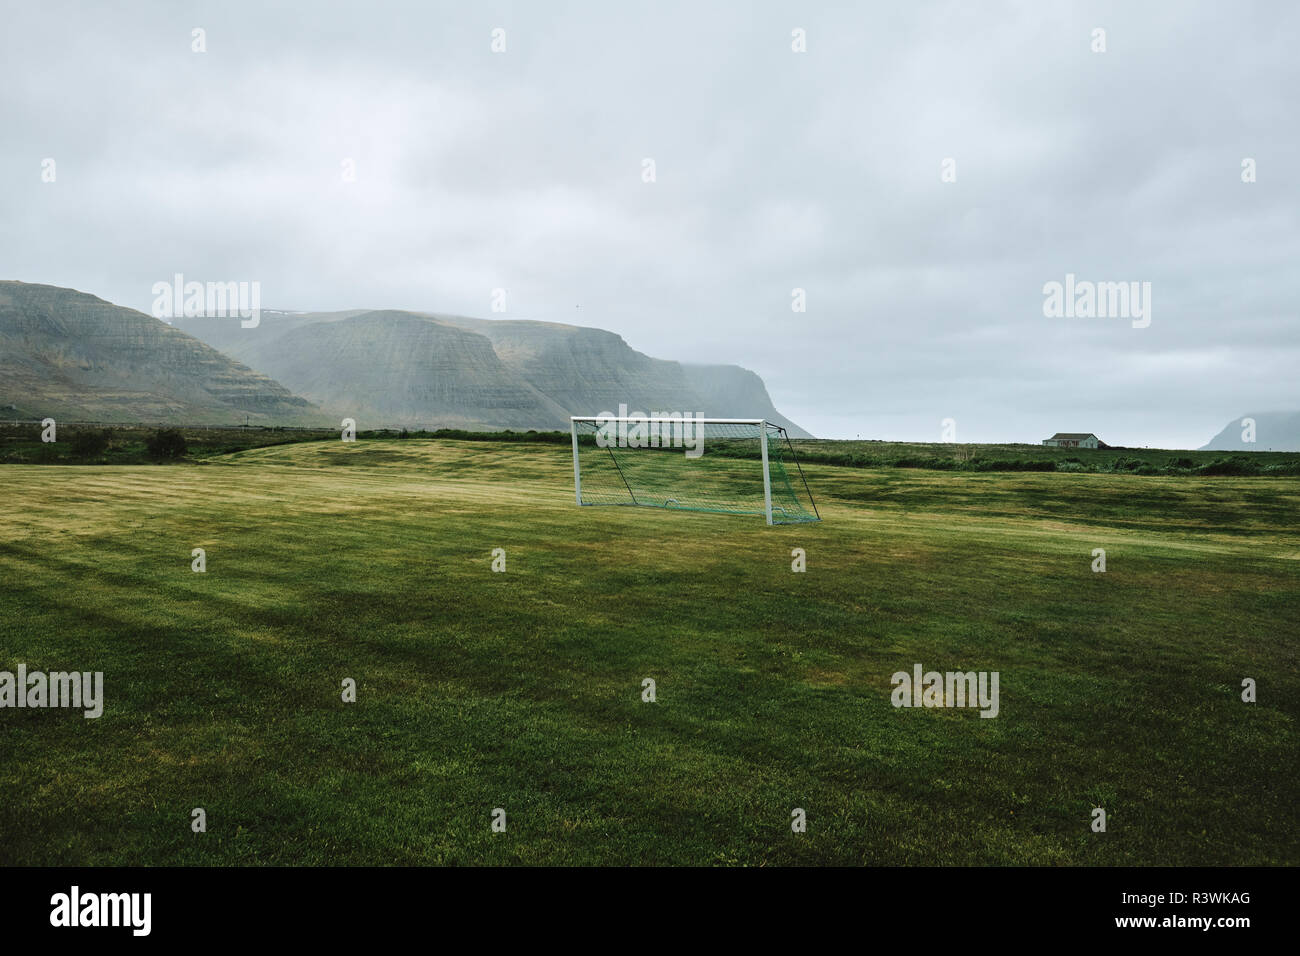 A lone empty football pitch and goal in the remote and barren Iceland landscape. - Stock Image